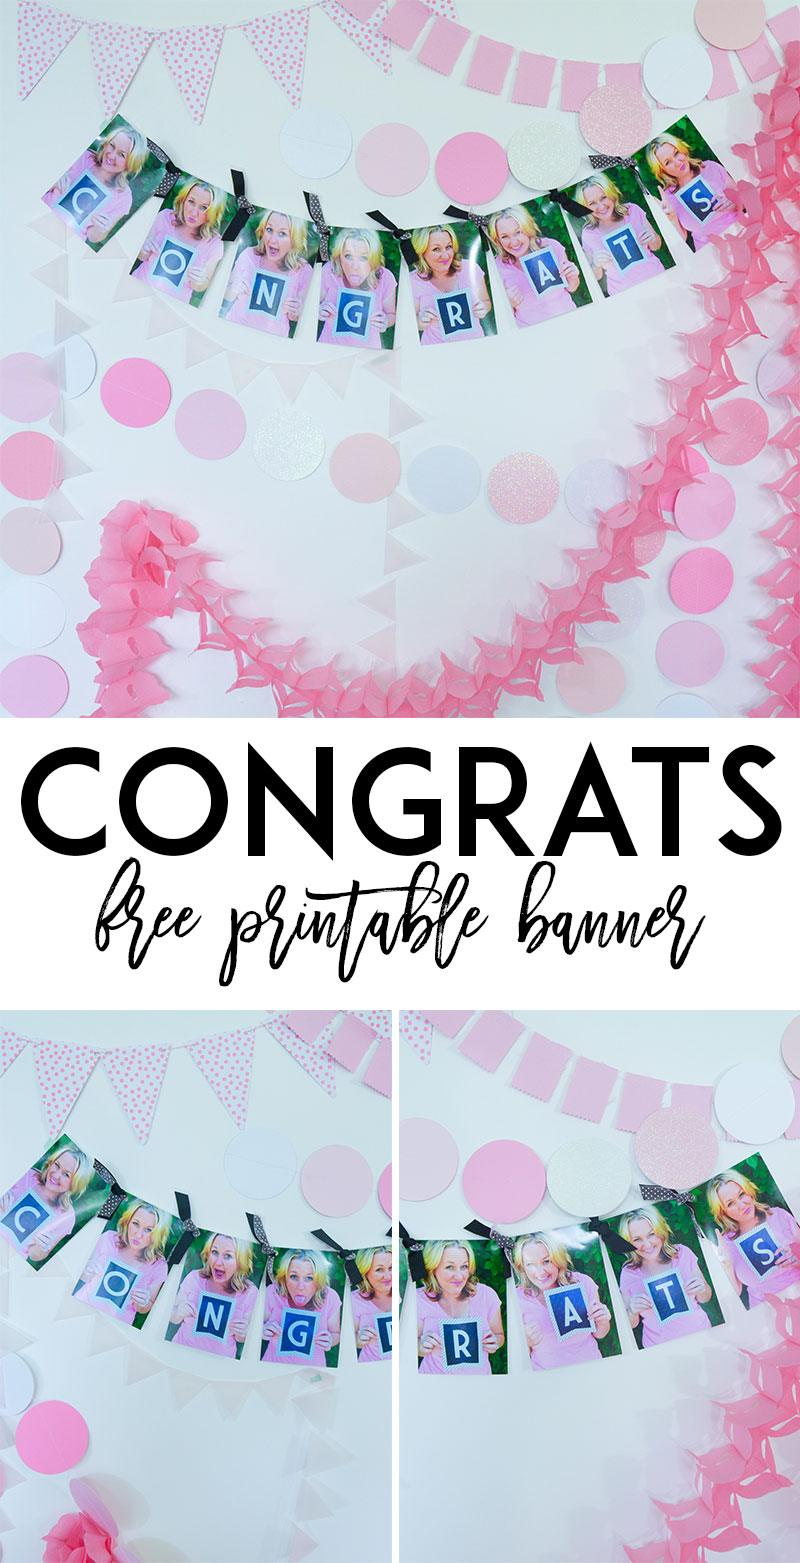 Photo Garland and Free Printable Congratulation Banner by Lindi Haws of Love The Day